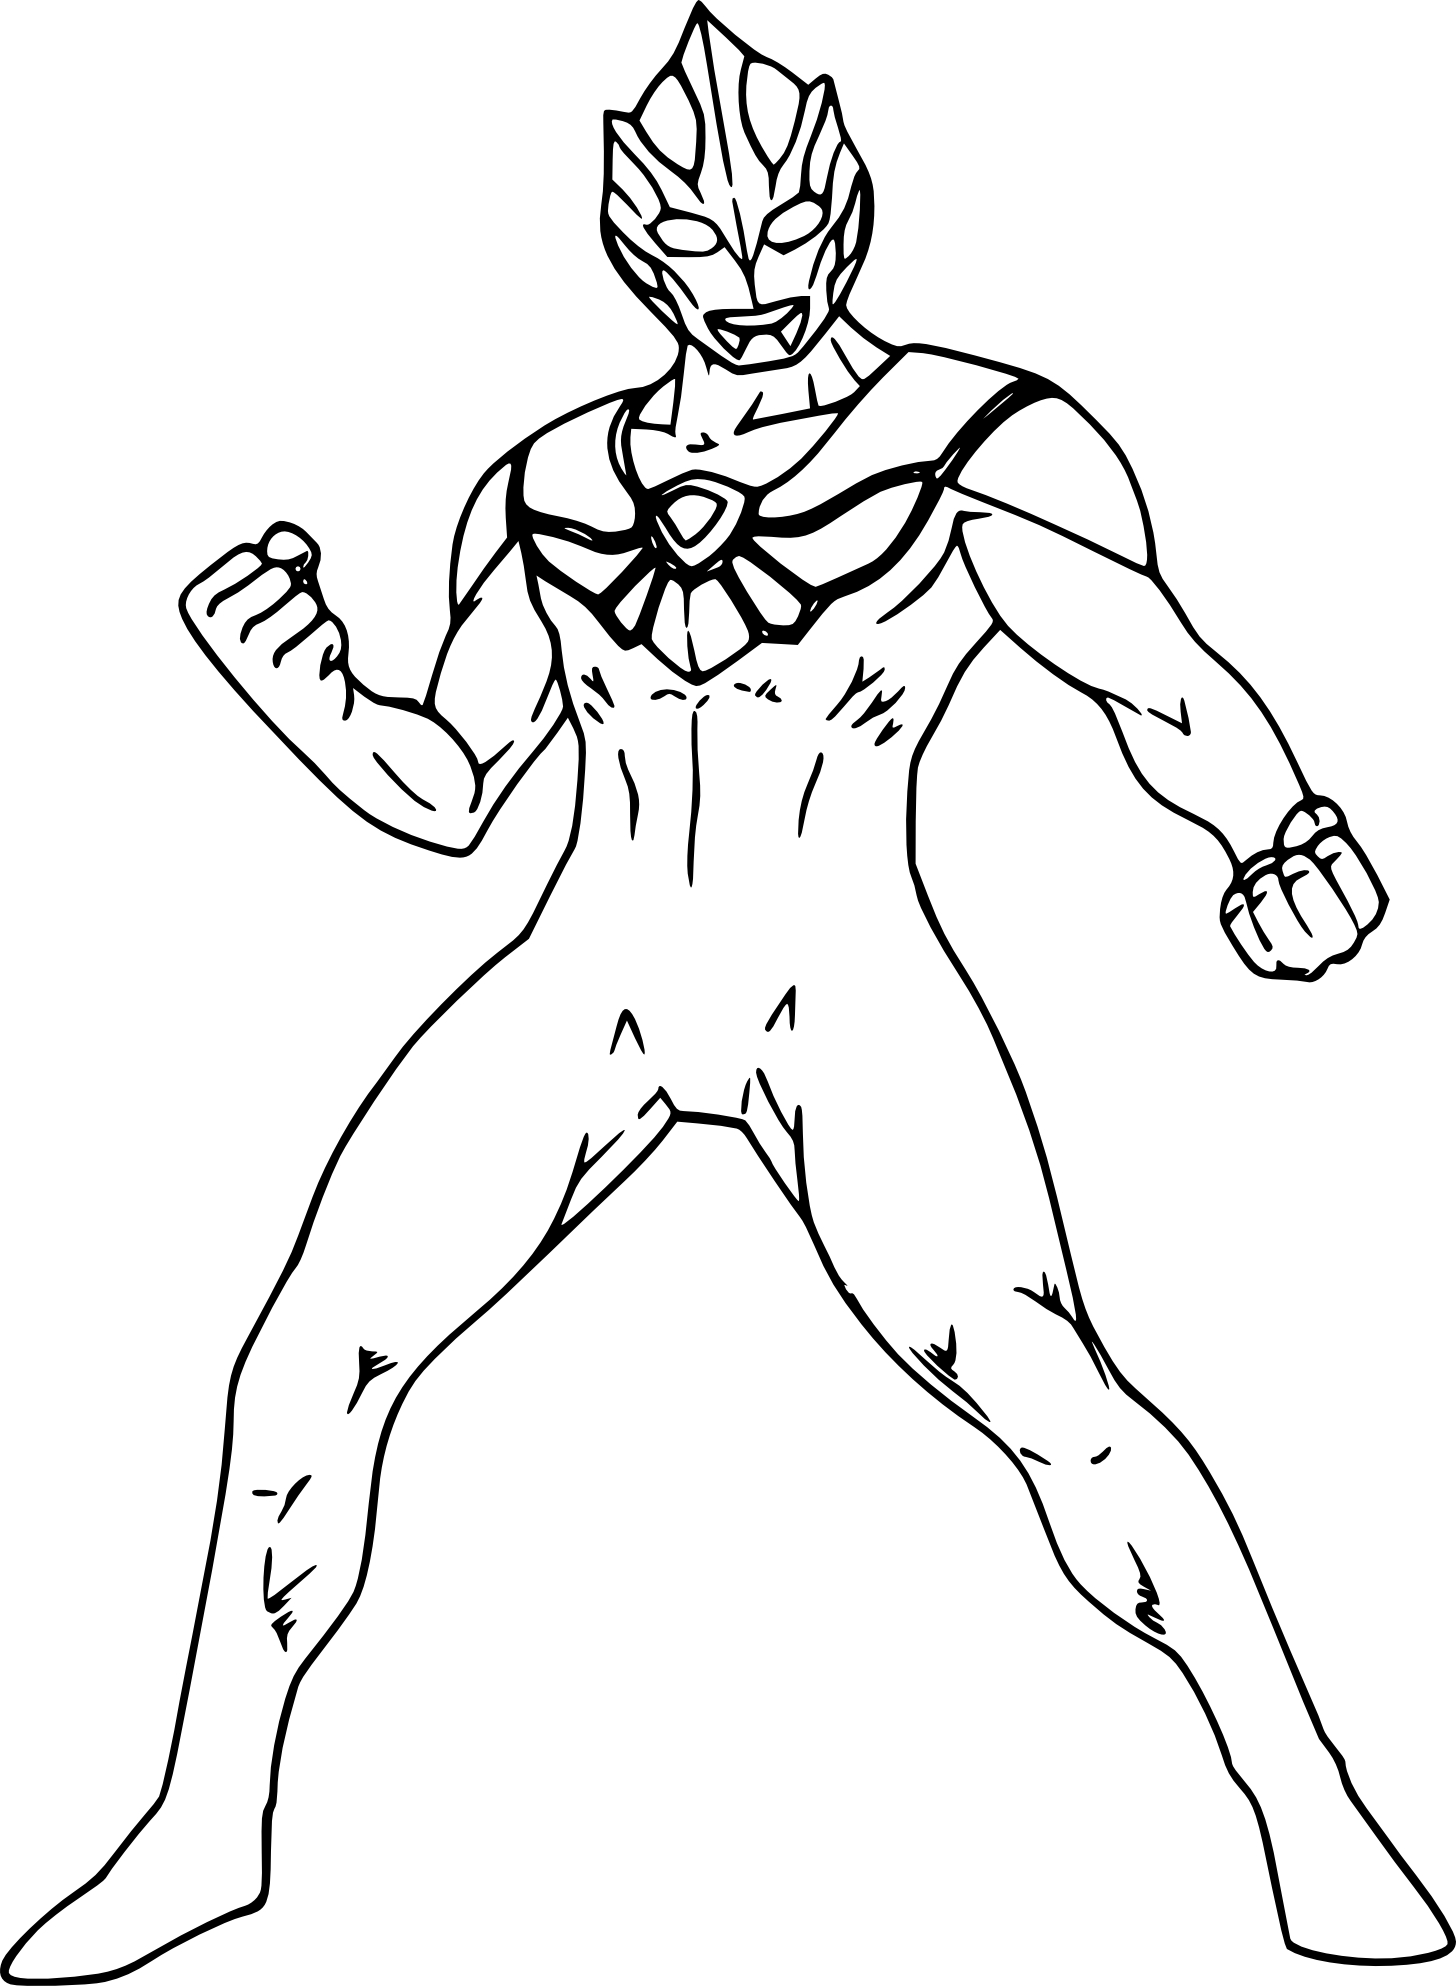 Coloriage ultraman